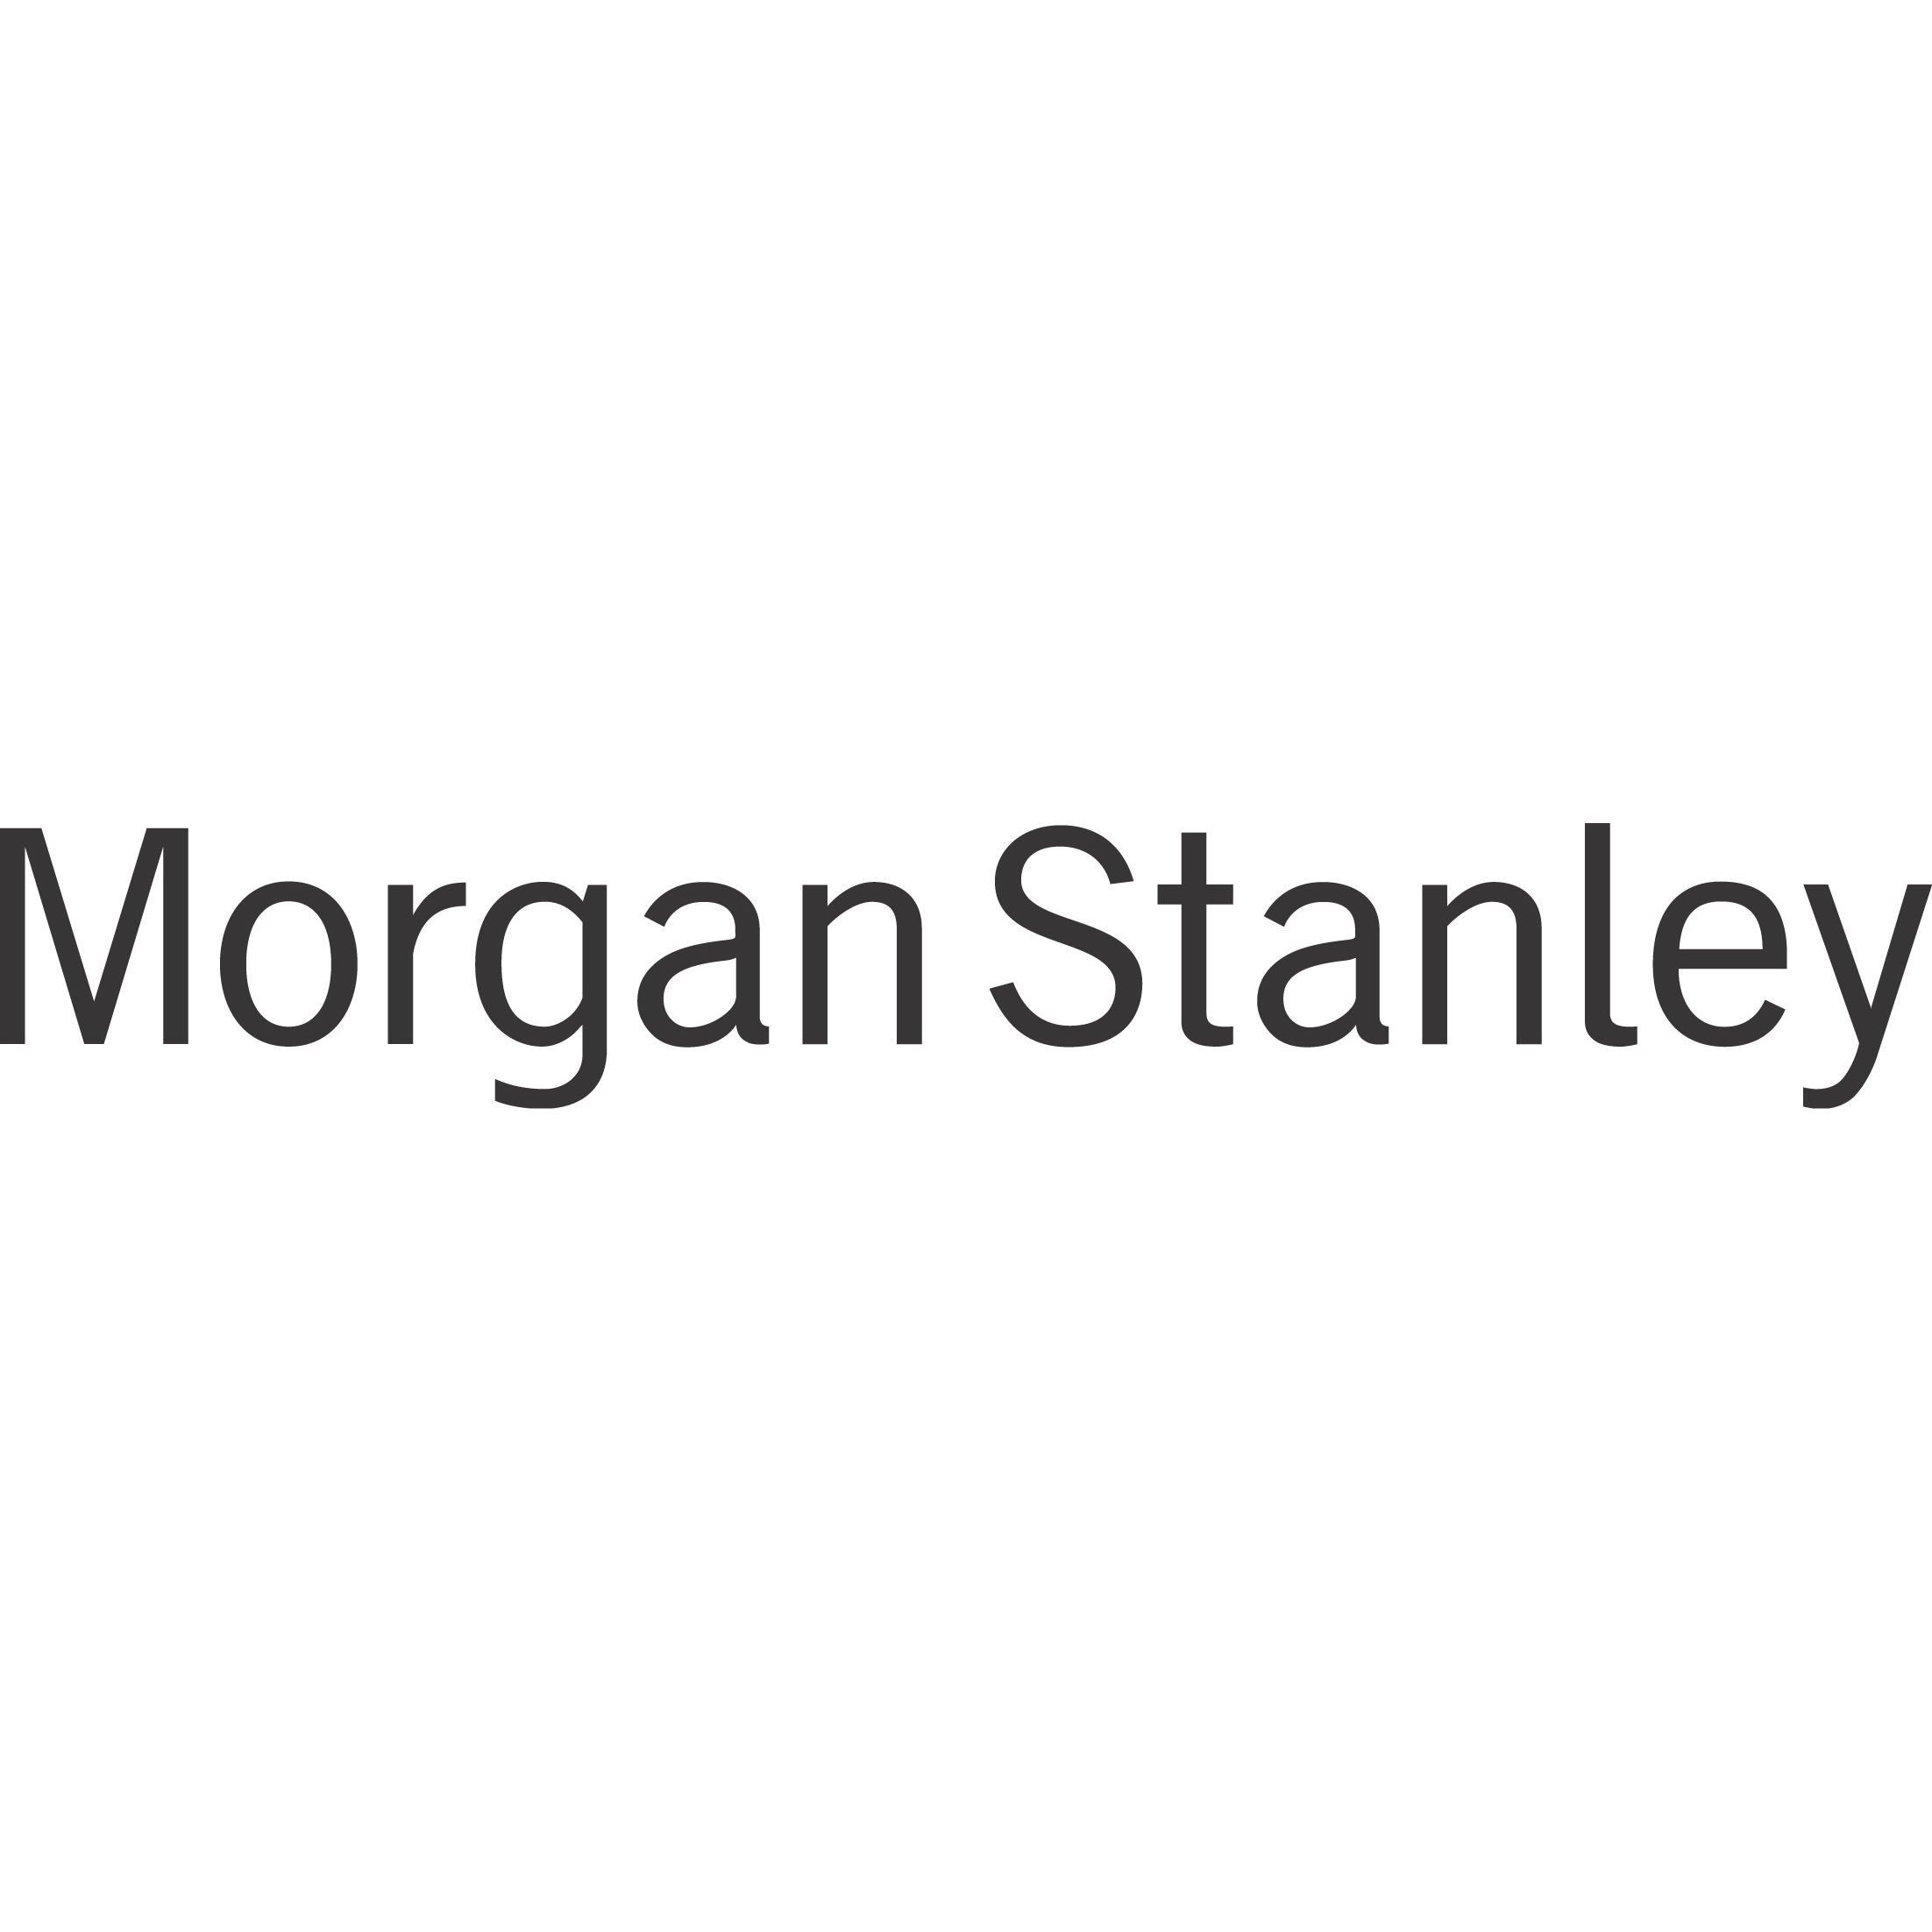 Thomas Steele - Morgan Stanley | Financial Advisor in Atlanta,Georgia